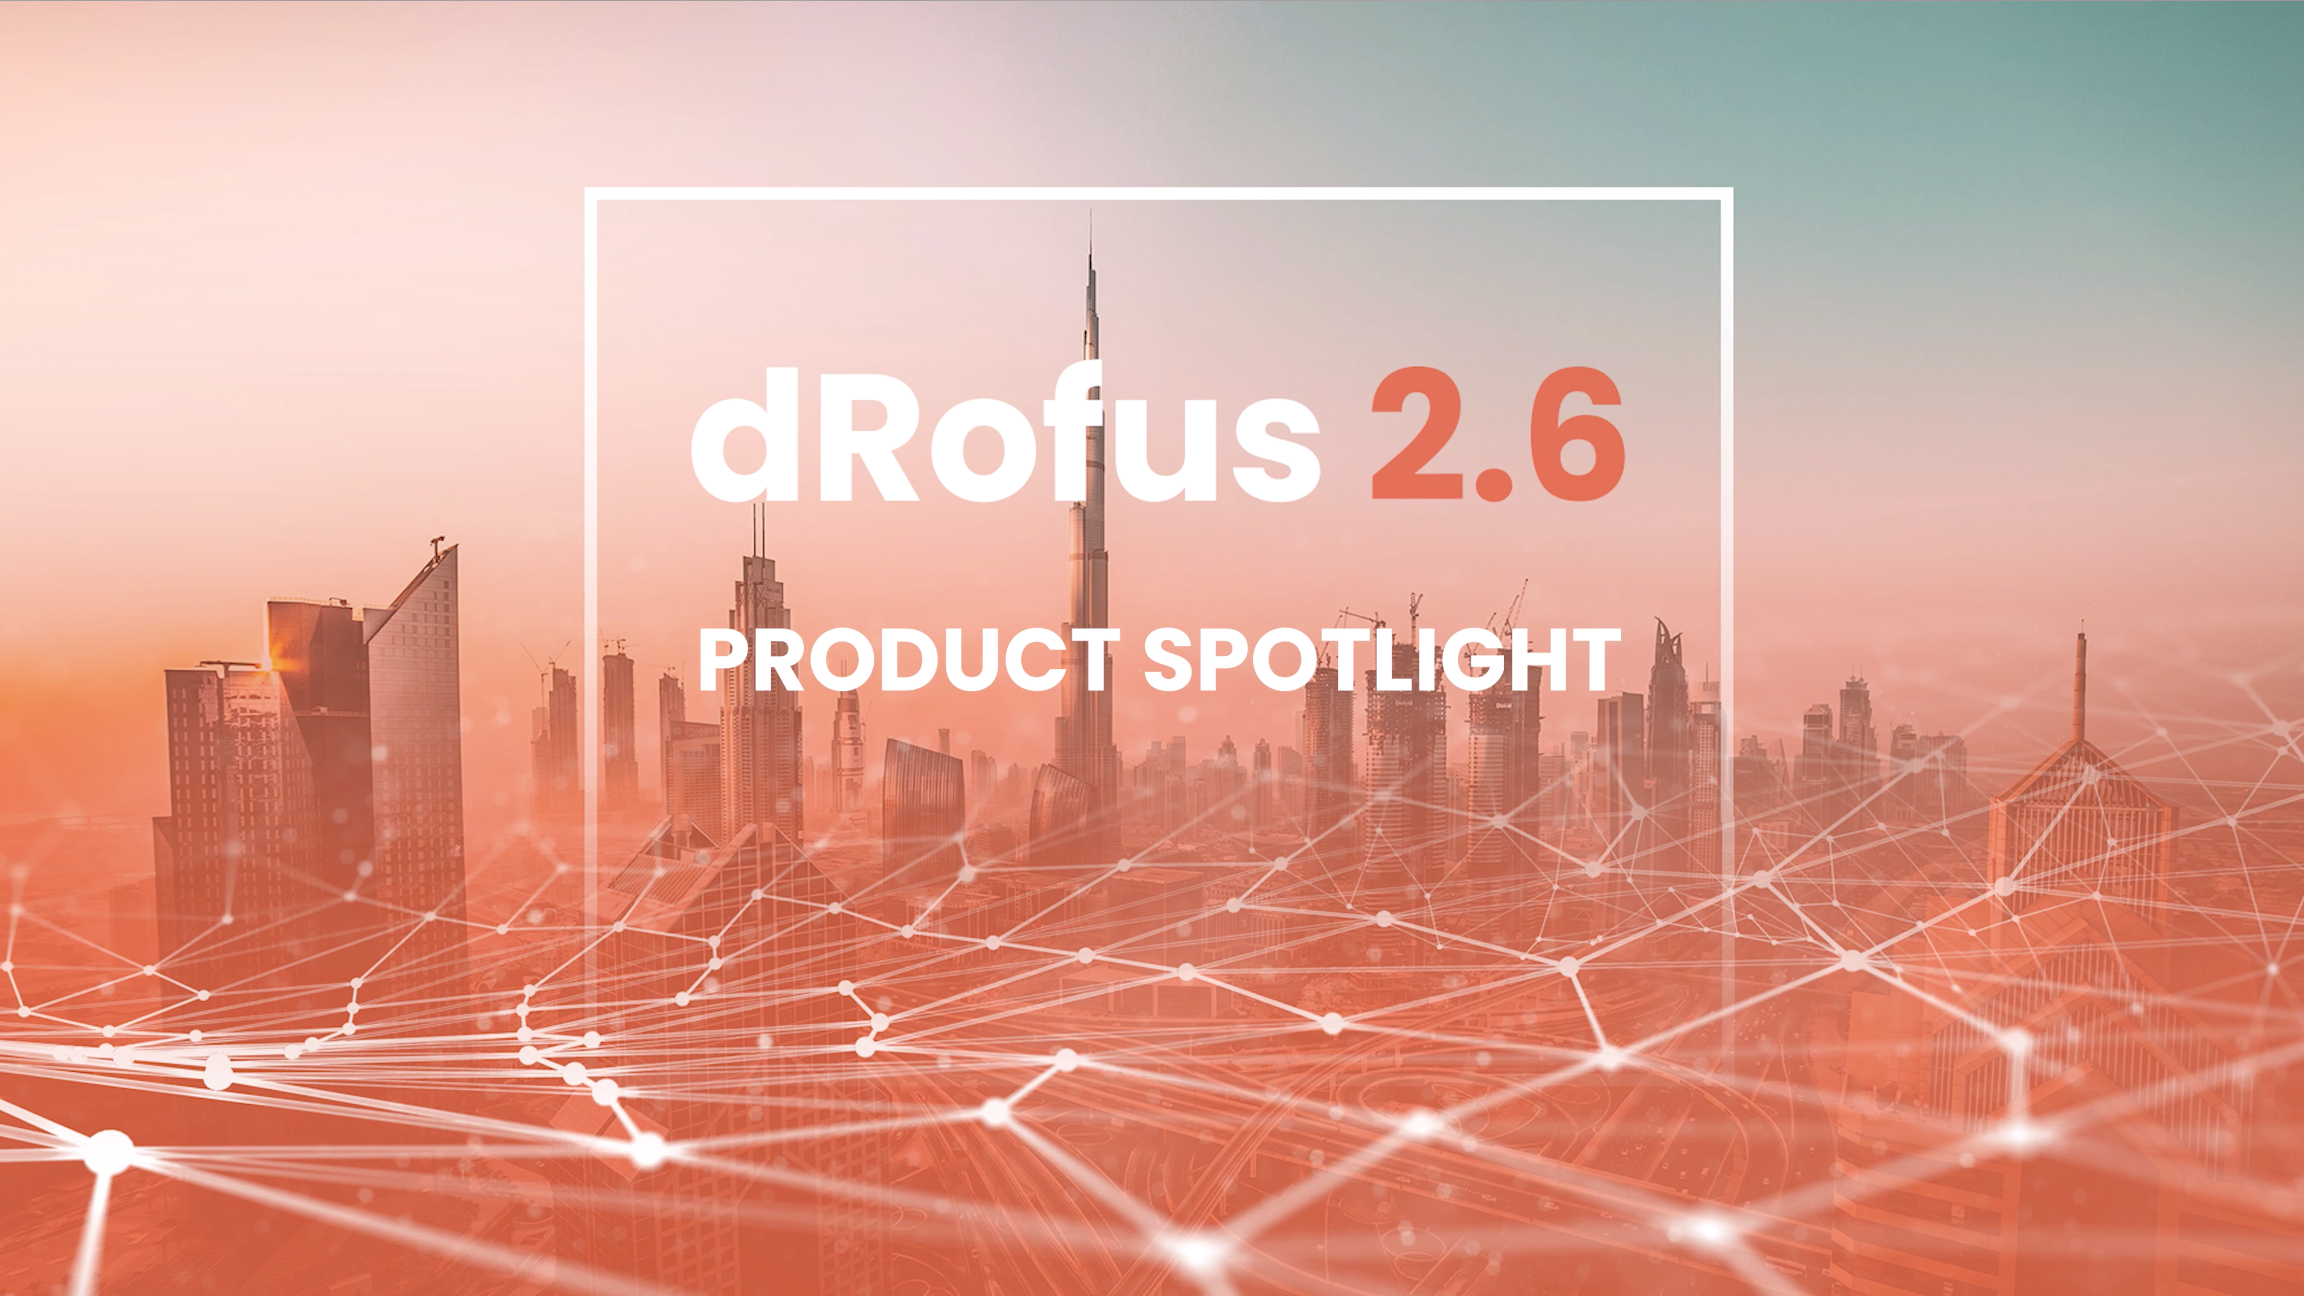 dRofus 2.6 – the Smart Way to Connect Design with Product Data